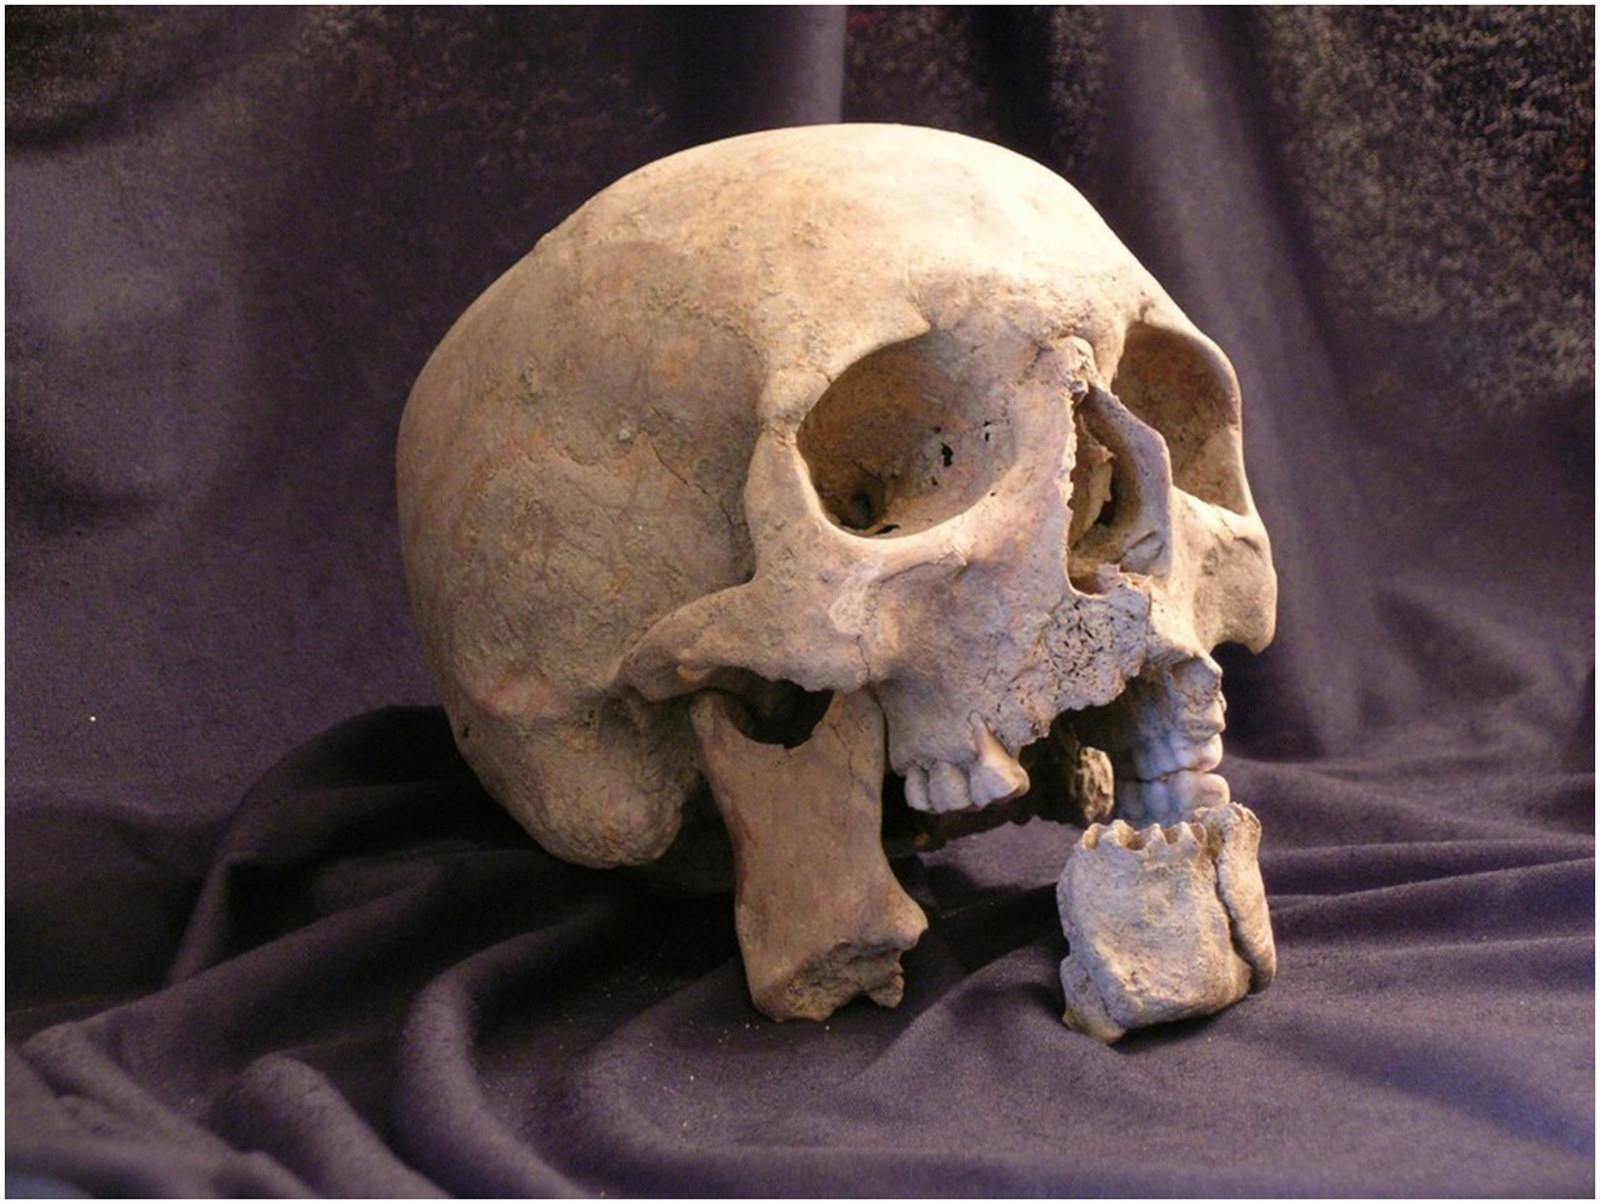 Skull of the soldier.